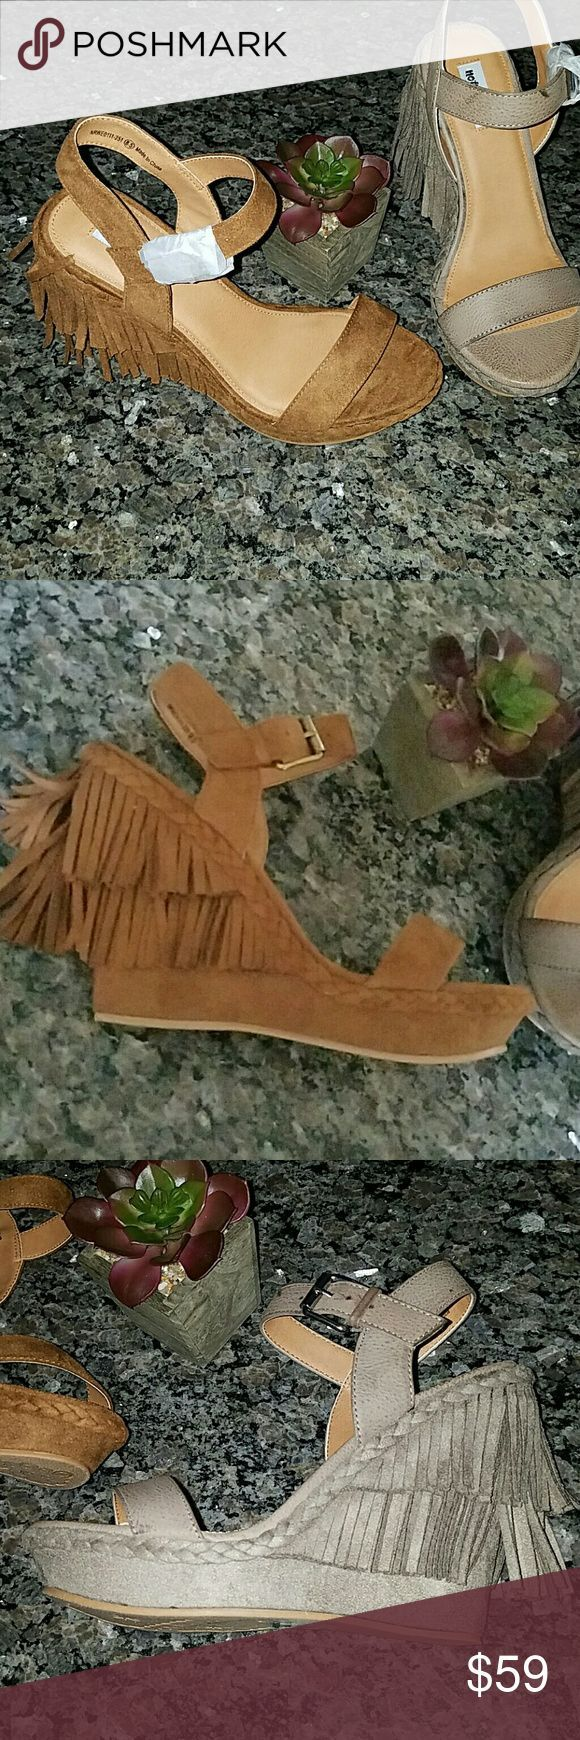 Not Rated Roaring Ruby Fringe Wedge Sandals Must have fun and chic Sandals! Buckle closure Fringe sides and back Slightly padded footbed Braided det